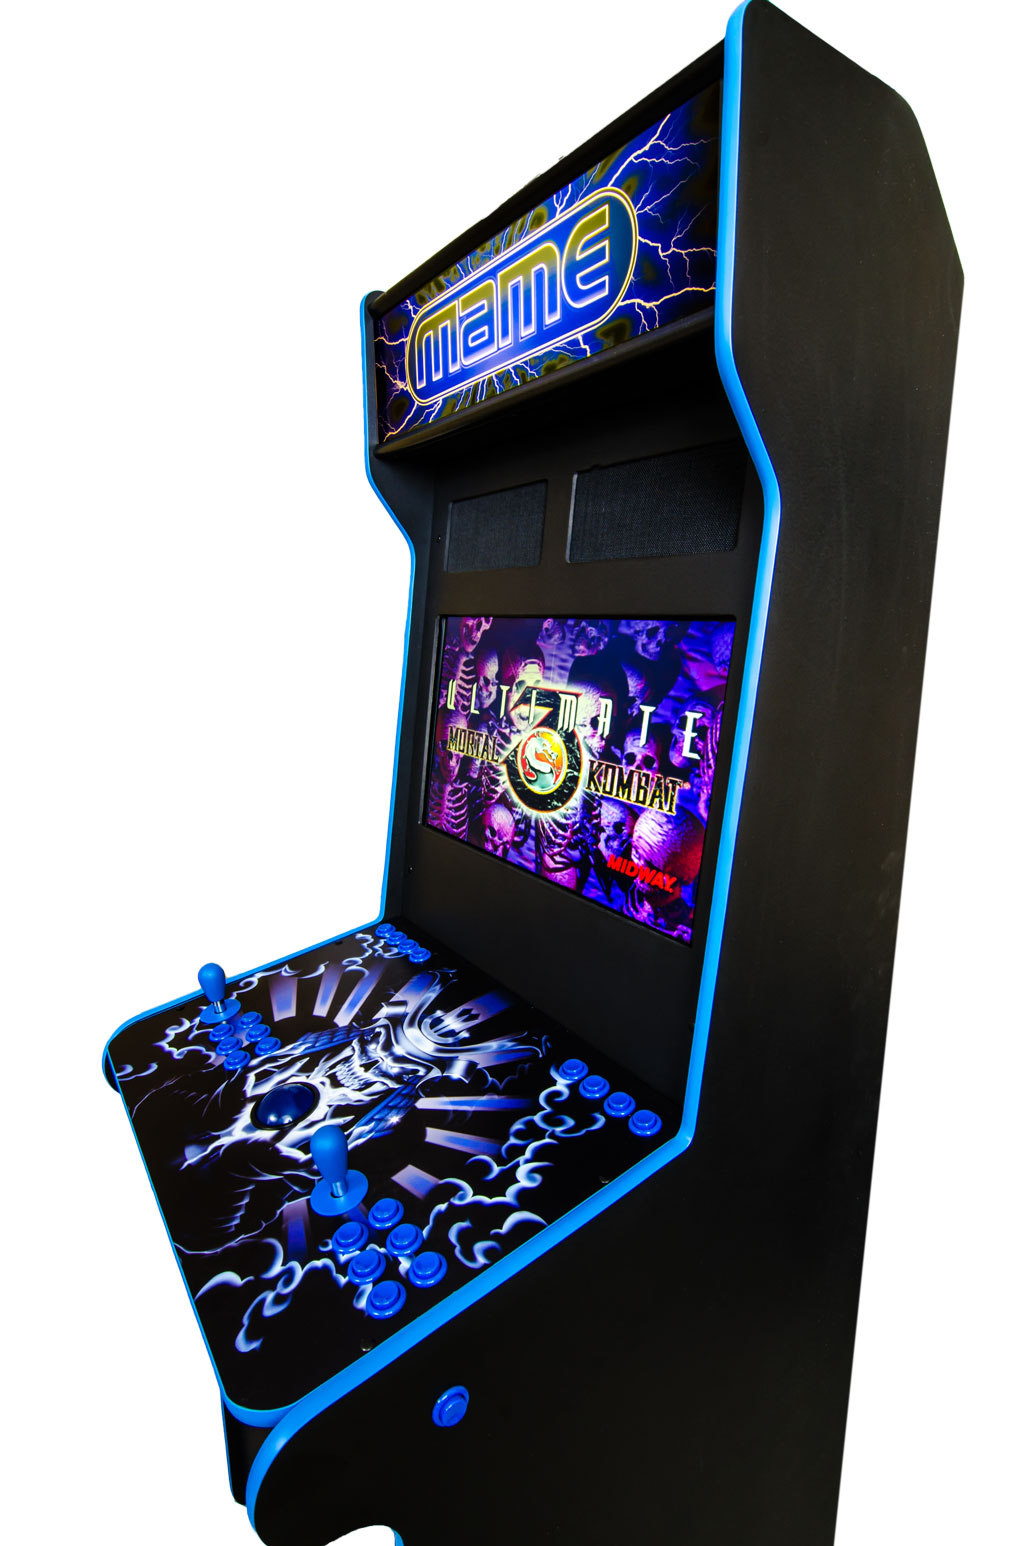 Two-player Standing Arcade Console – standard graphics